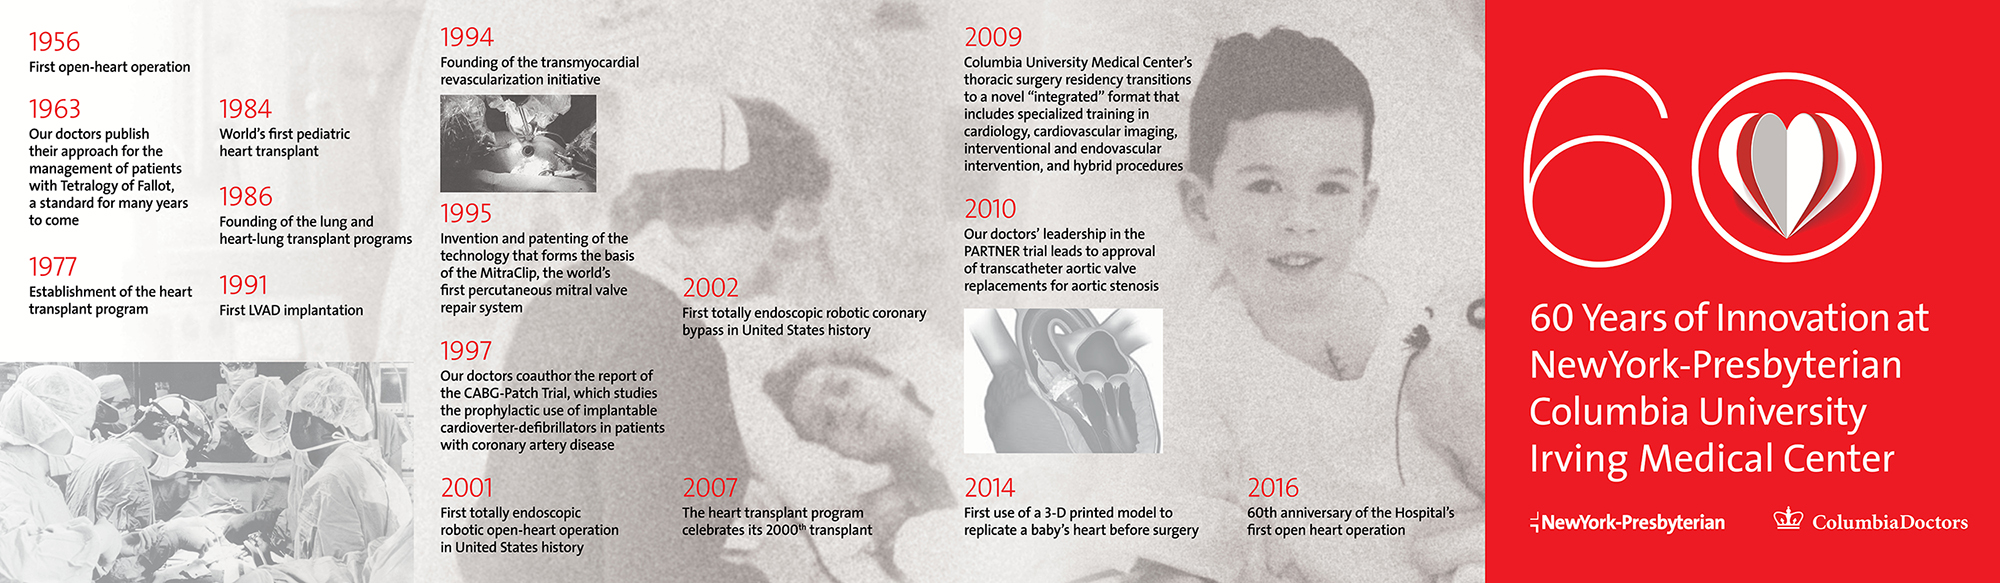 60th Anniversary of Cardiac Surgery Celebrated at NewYork-Presbyterian/Columbia University Medical Center